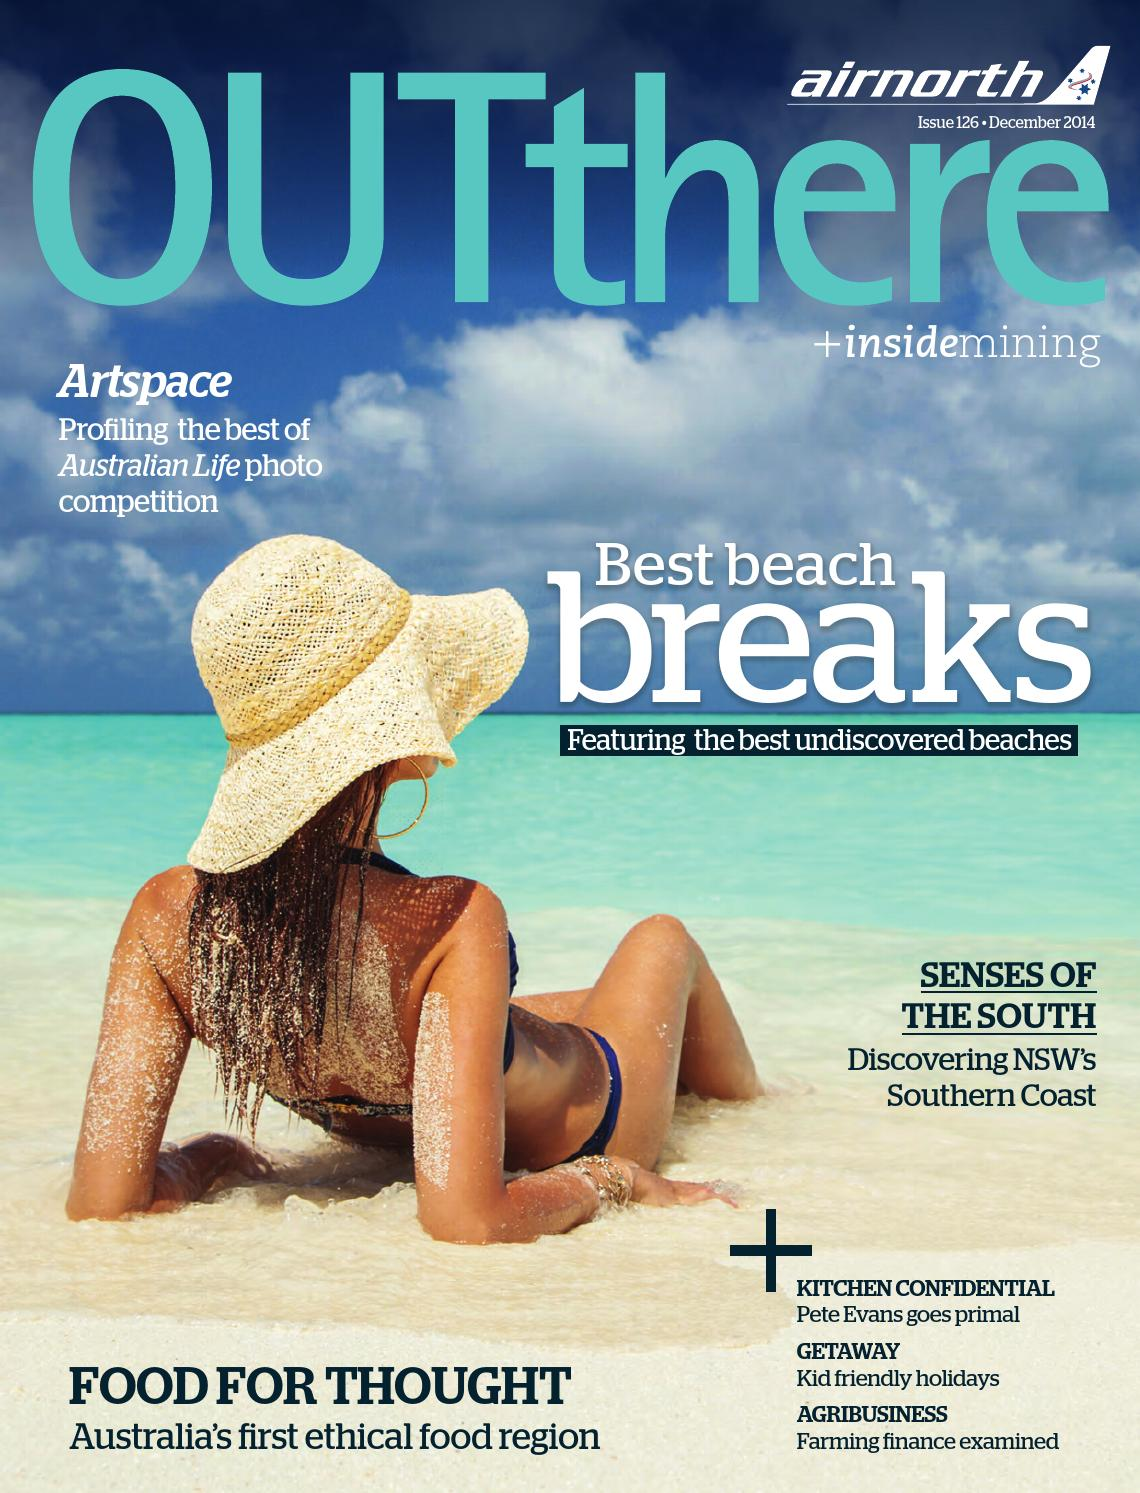 OUTthere Airnorth December 2014 by Edge In-flight Magazines - issuu